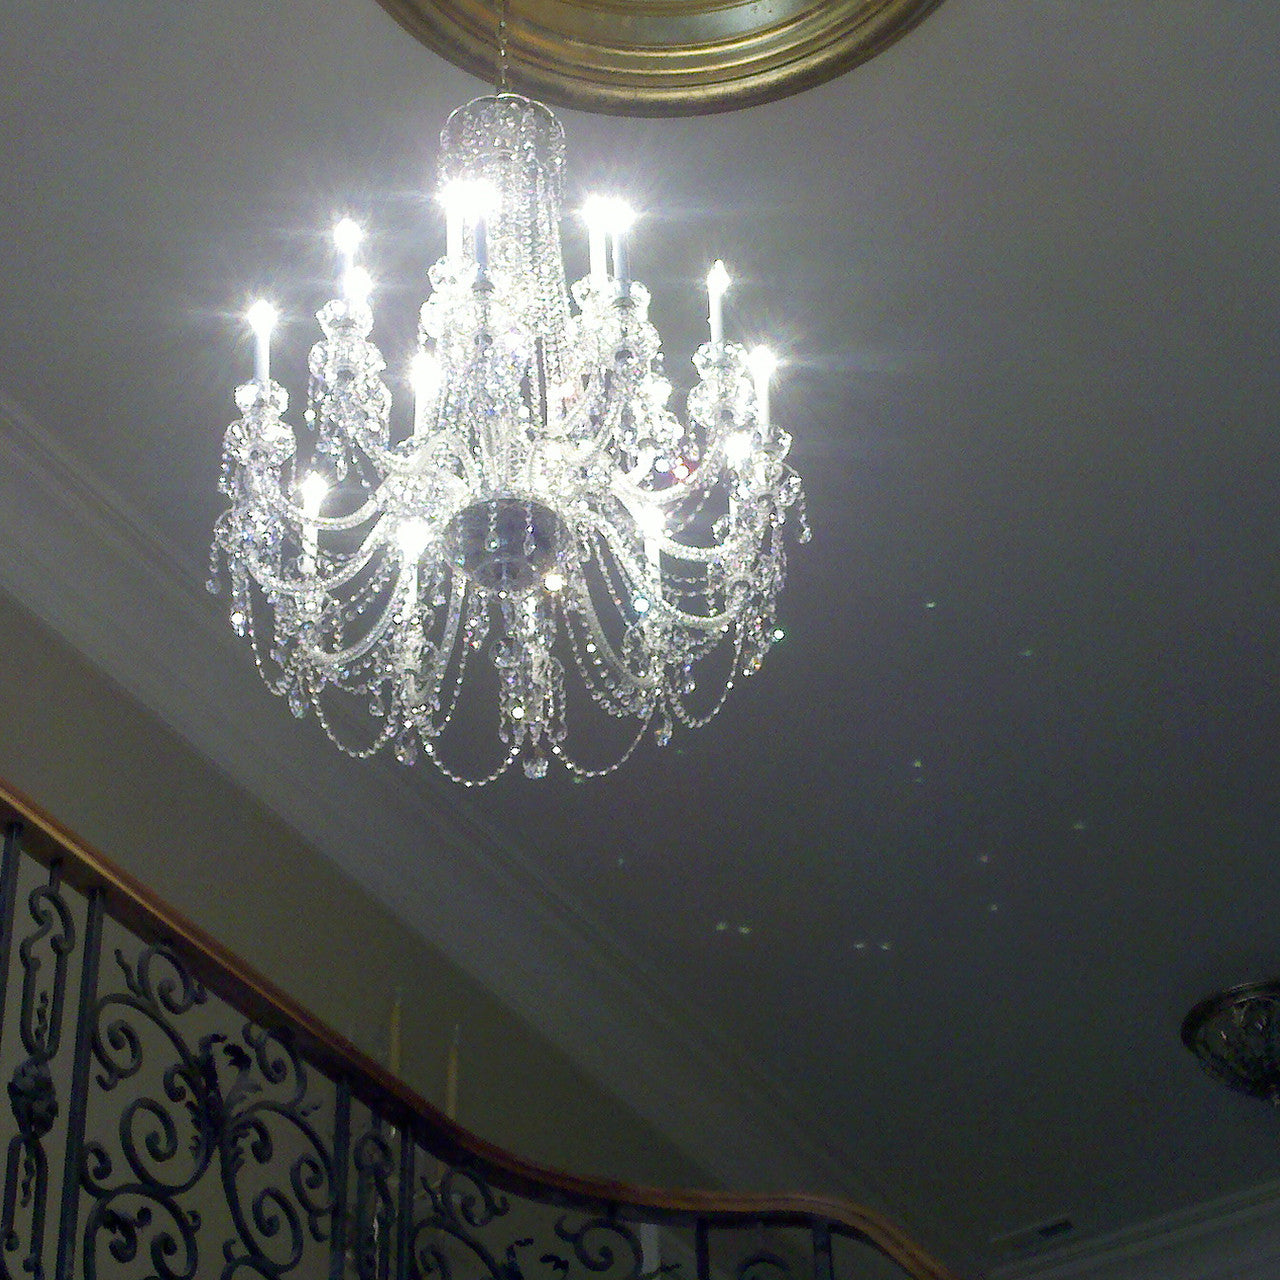 King 18 light crystal chandelier with swarovski 32 x 45 crystal chandelier king with swarovski king in foyer arubaitofo Images